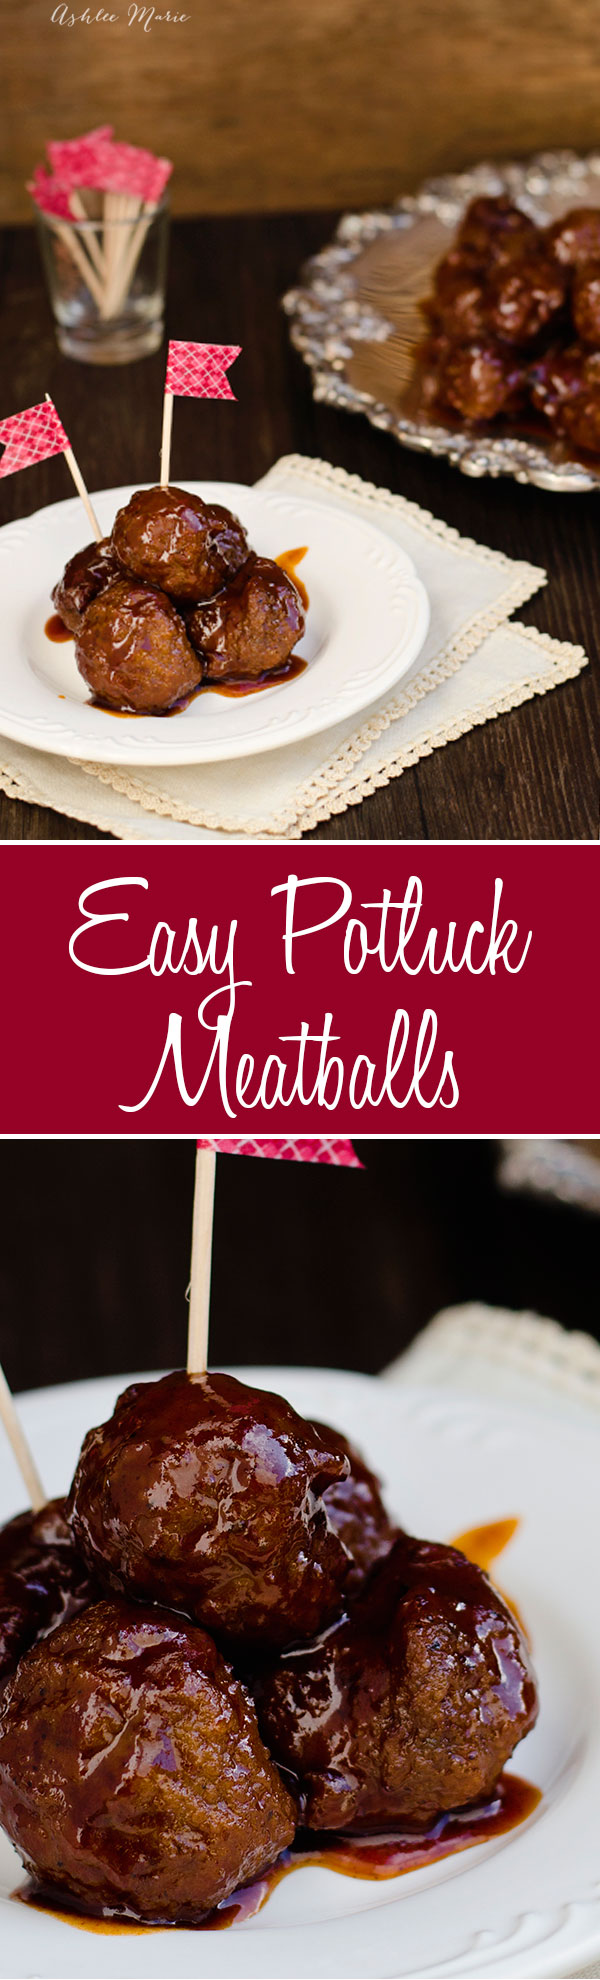 these 3 ingredient meatballs are perfect for parties and large crowds, my kids love them so much we make them all the time and serve them over rice